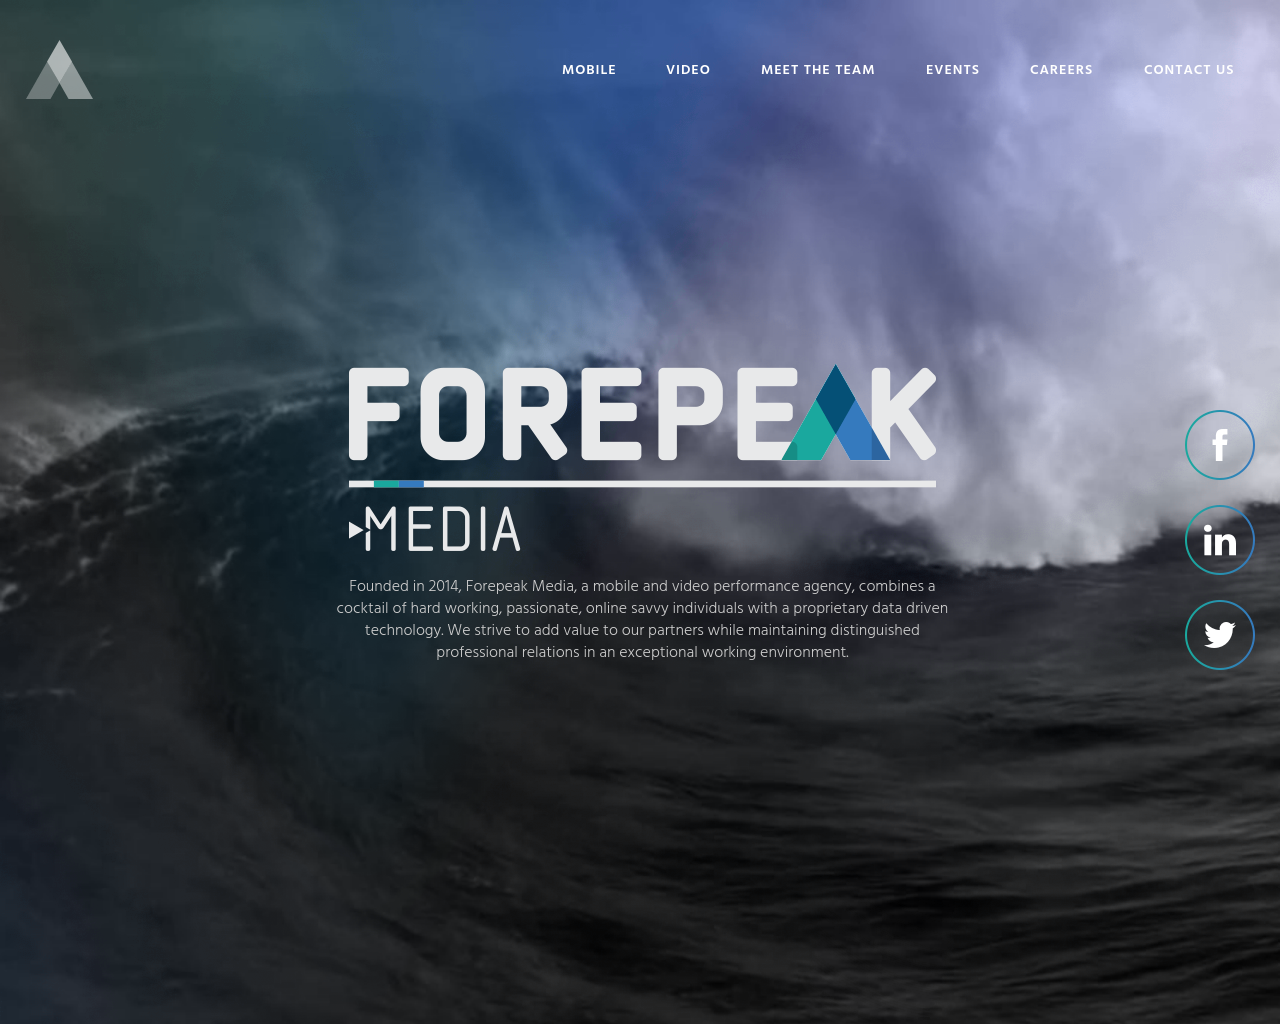 Forepeak-Media-Advertising-Reviews-Pricing